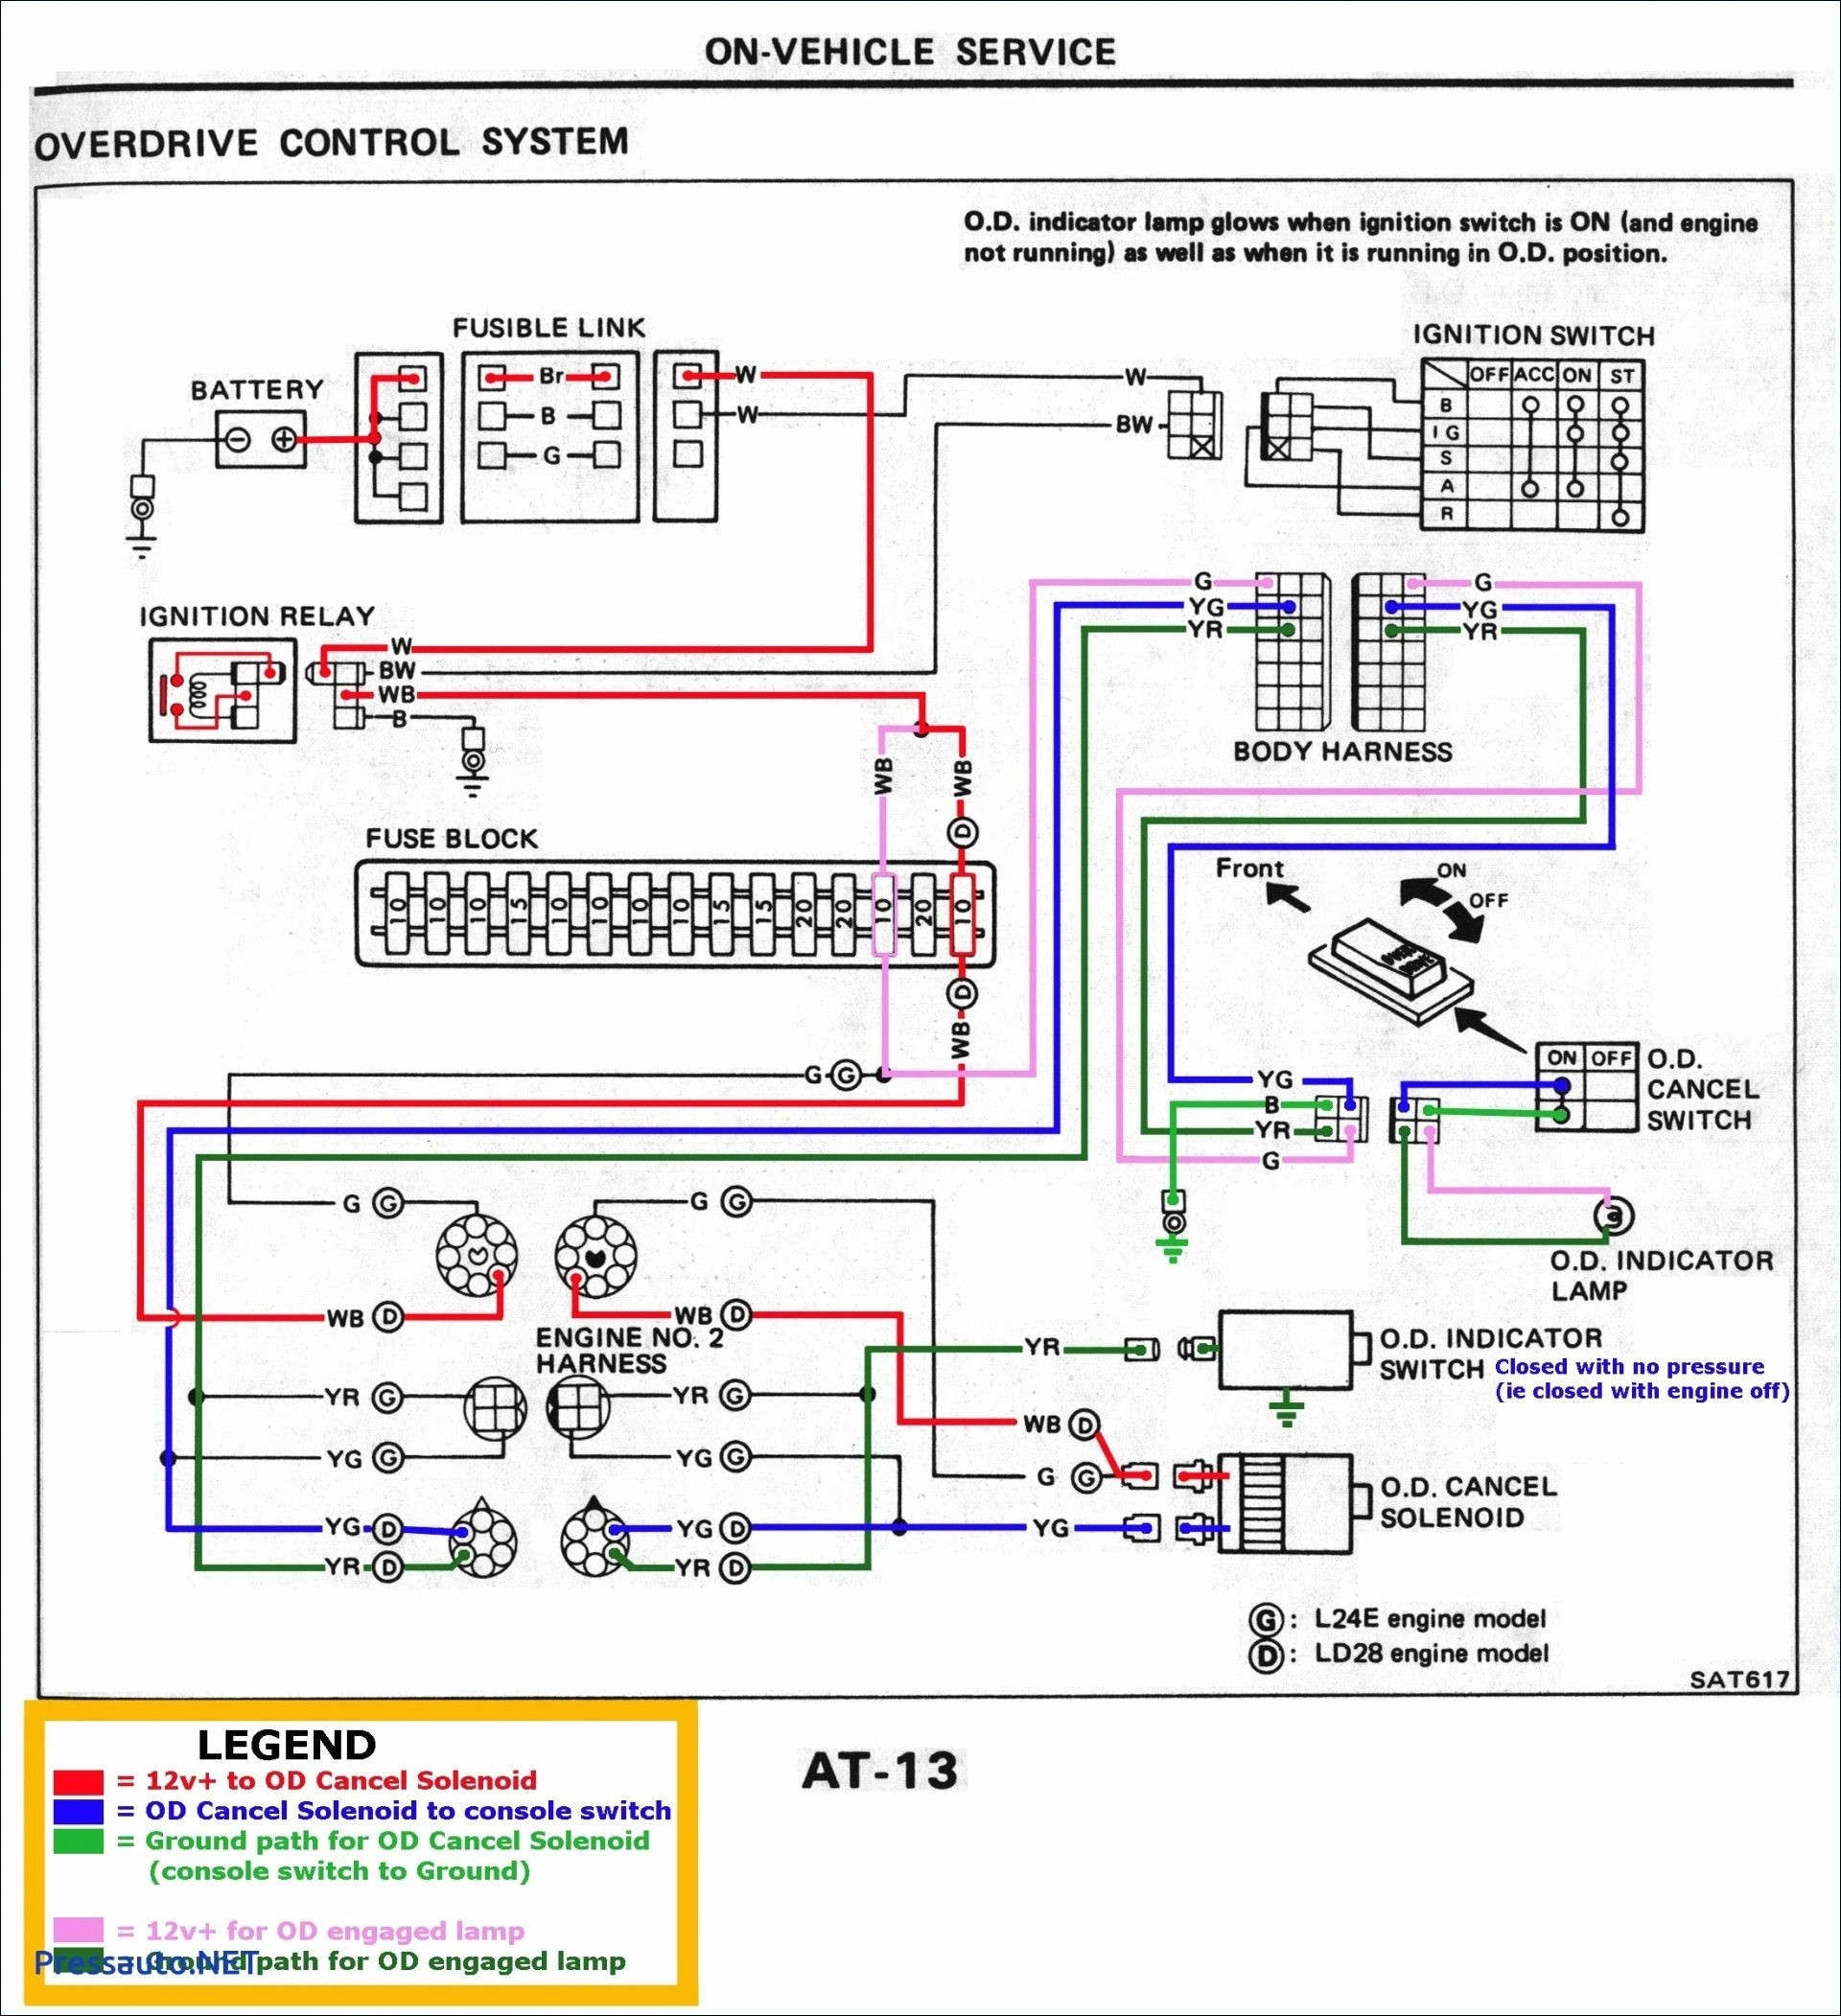 Altronix Relay Wiring Diagram | Free Wiring Diagram on bosch wiper motor, bosch relays and connectors, bosch relay circuit, bosch relay tools, form c contact diagram, bosch relay switch, 5 pole relay diagram, access control diagram, circuit diagram, relay switch diagram, fuse and relay diagram, bosch horn relay, bosch power relay diagram, 2000 ford ranger light switch diagram, auto on off switch diagram, bosch relay block diagram, electrical relay diagram, power supply wiring diagram, bosch 5 pin relay diagram, 12v relay diagram,